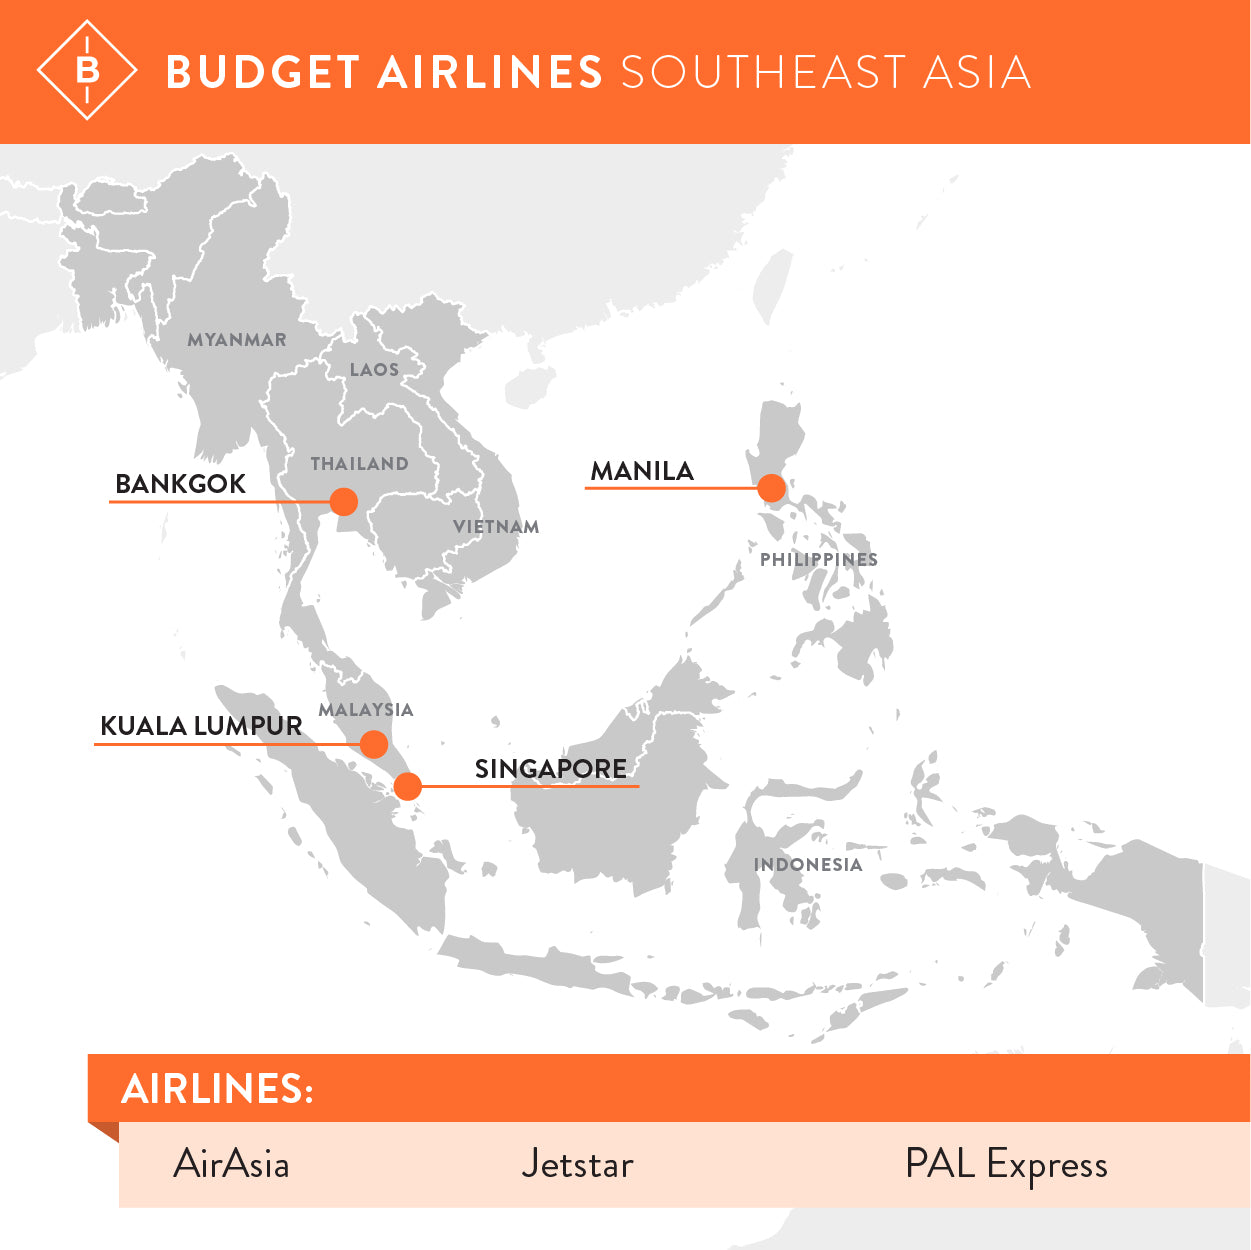 Low cost carrier hubs in South East Asia.